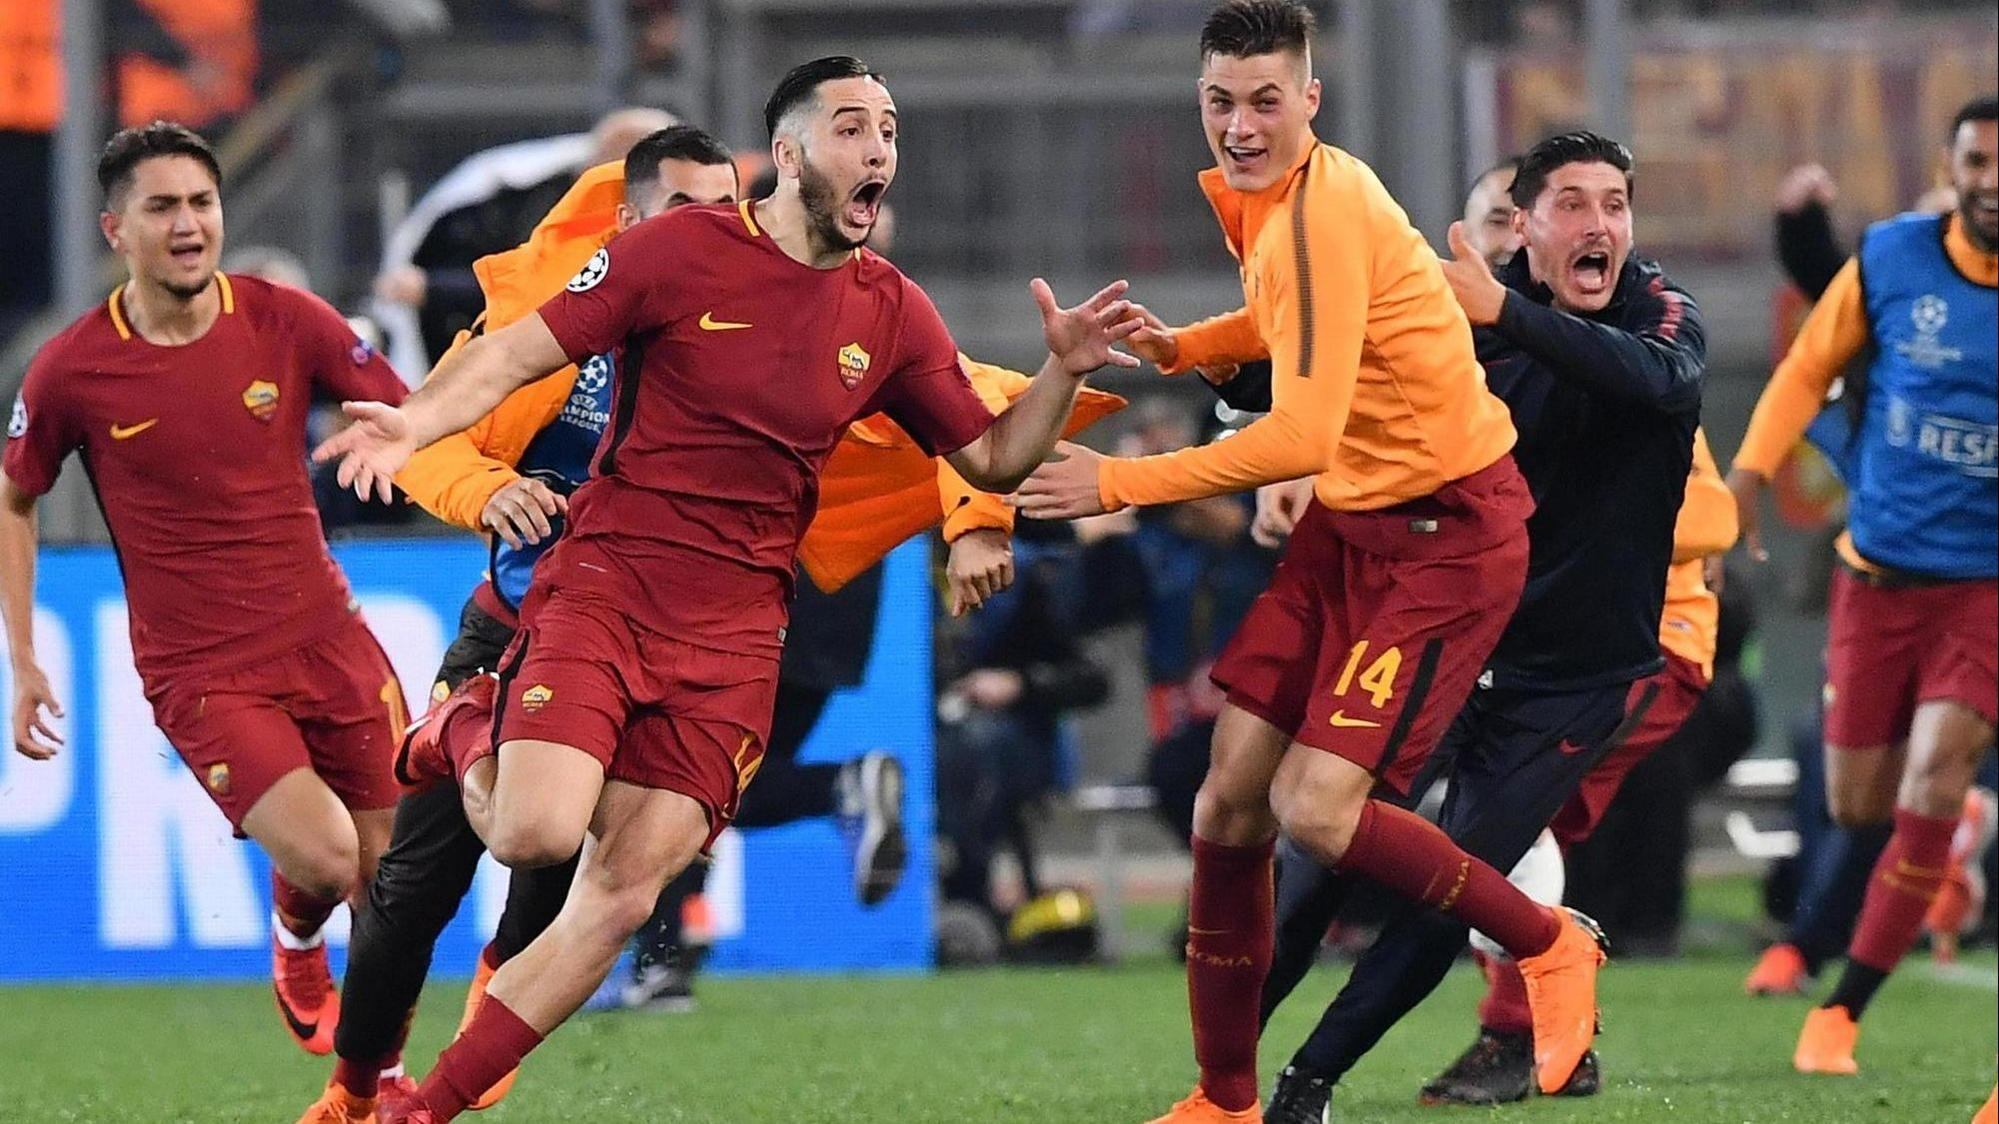 Chelsea Vs Manchester United Vs Fc Barcelona: Roma Knock Barcelona Out Of Champions League With